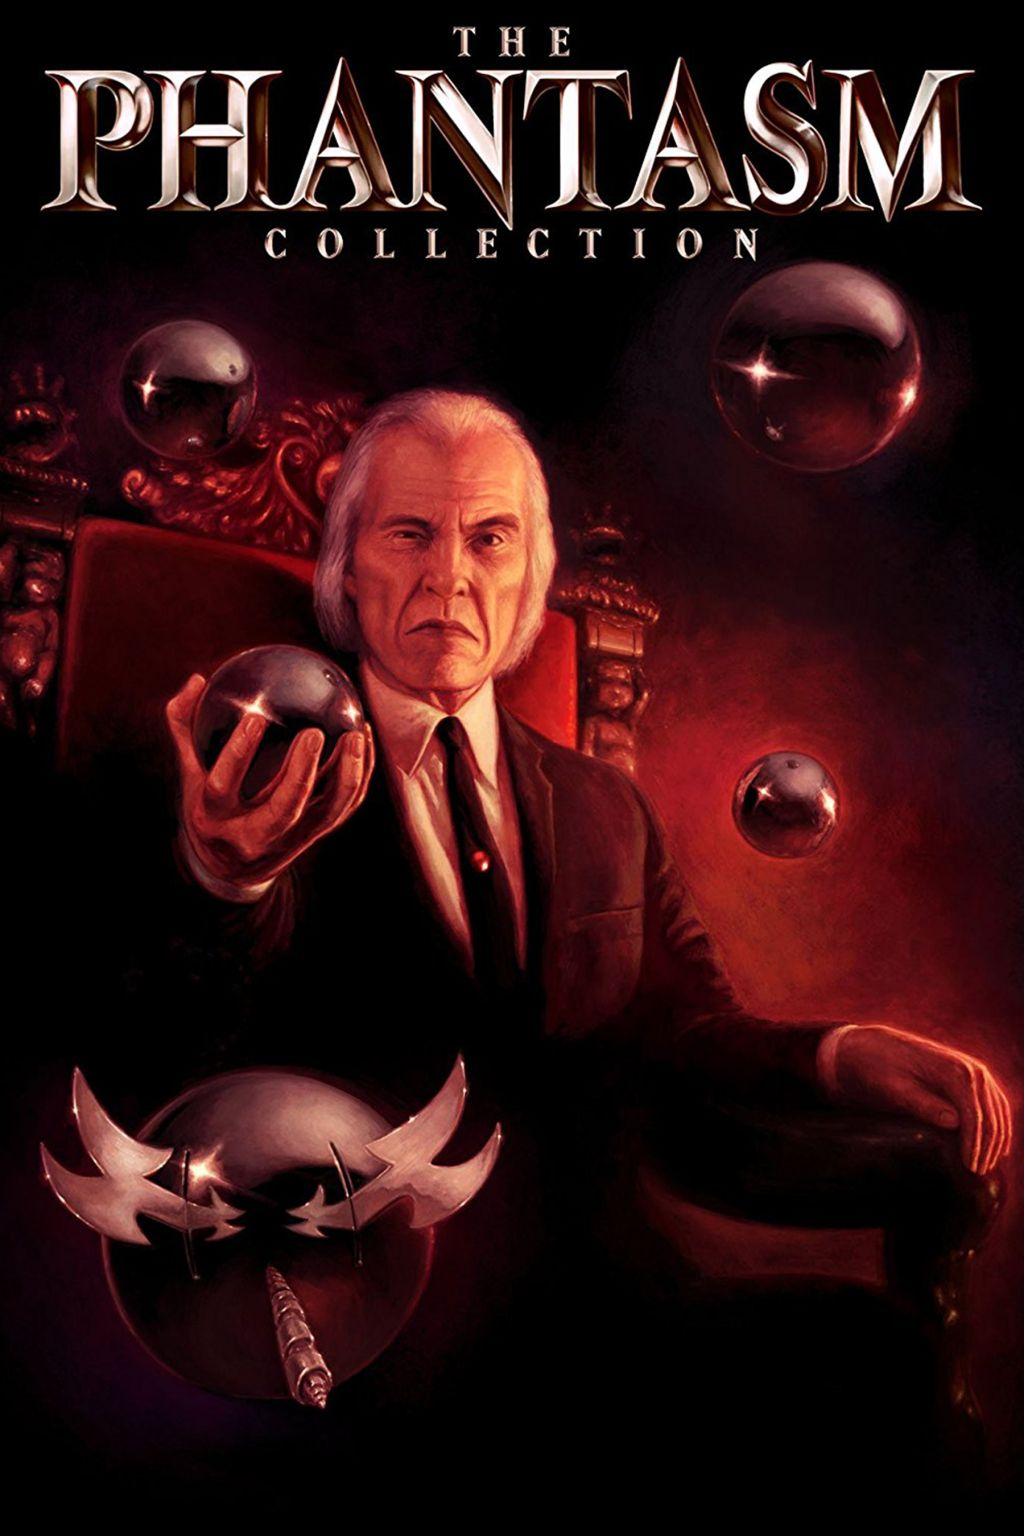 'Phantasm' series to be released as six-disc Blu-ray box set